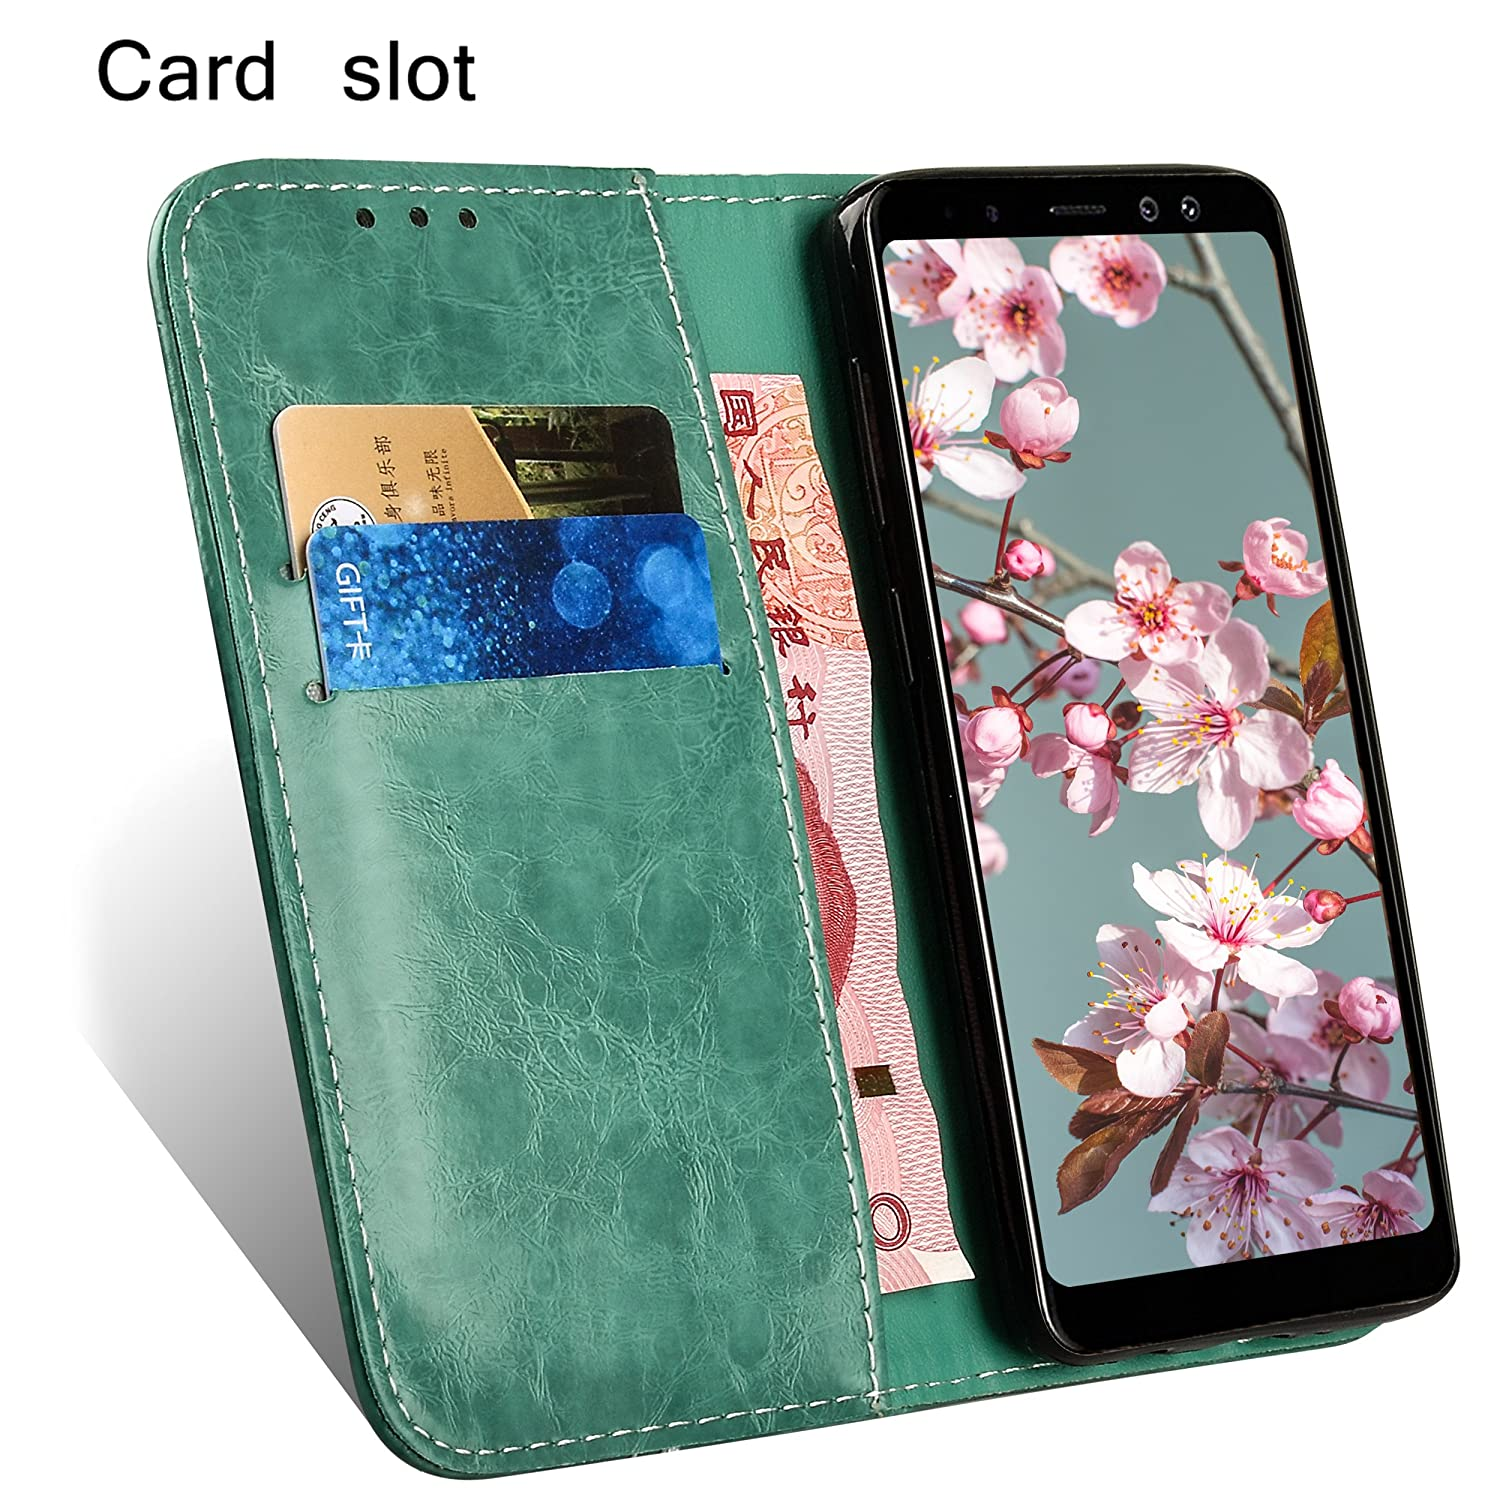 Galaxy S8 Case Ultra Pu Leather Gel Wallet Cover Built Goospery Xiaomi Note 4 4x Canvas Diary Pink Credit Card Holder Book Style Front Back Housing Fit Samsung Galaxys8 Sm G9500 G950fd